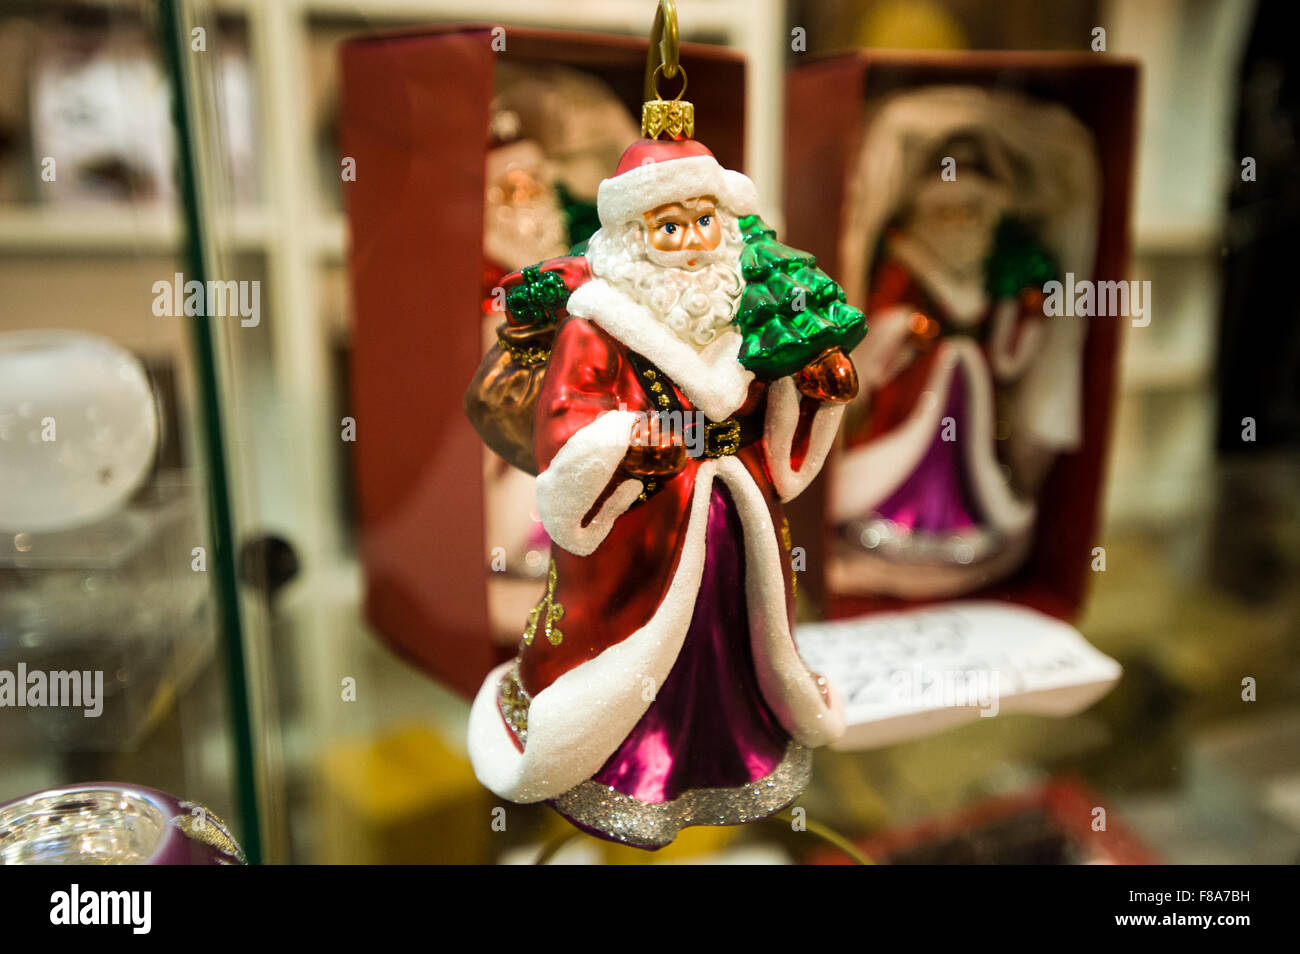 Piotrkow Trybunalski, Poland. 7th December, 2015. Santa Claus shaped christmas balls displayed for sale at 'Szkło - Stock Image